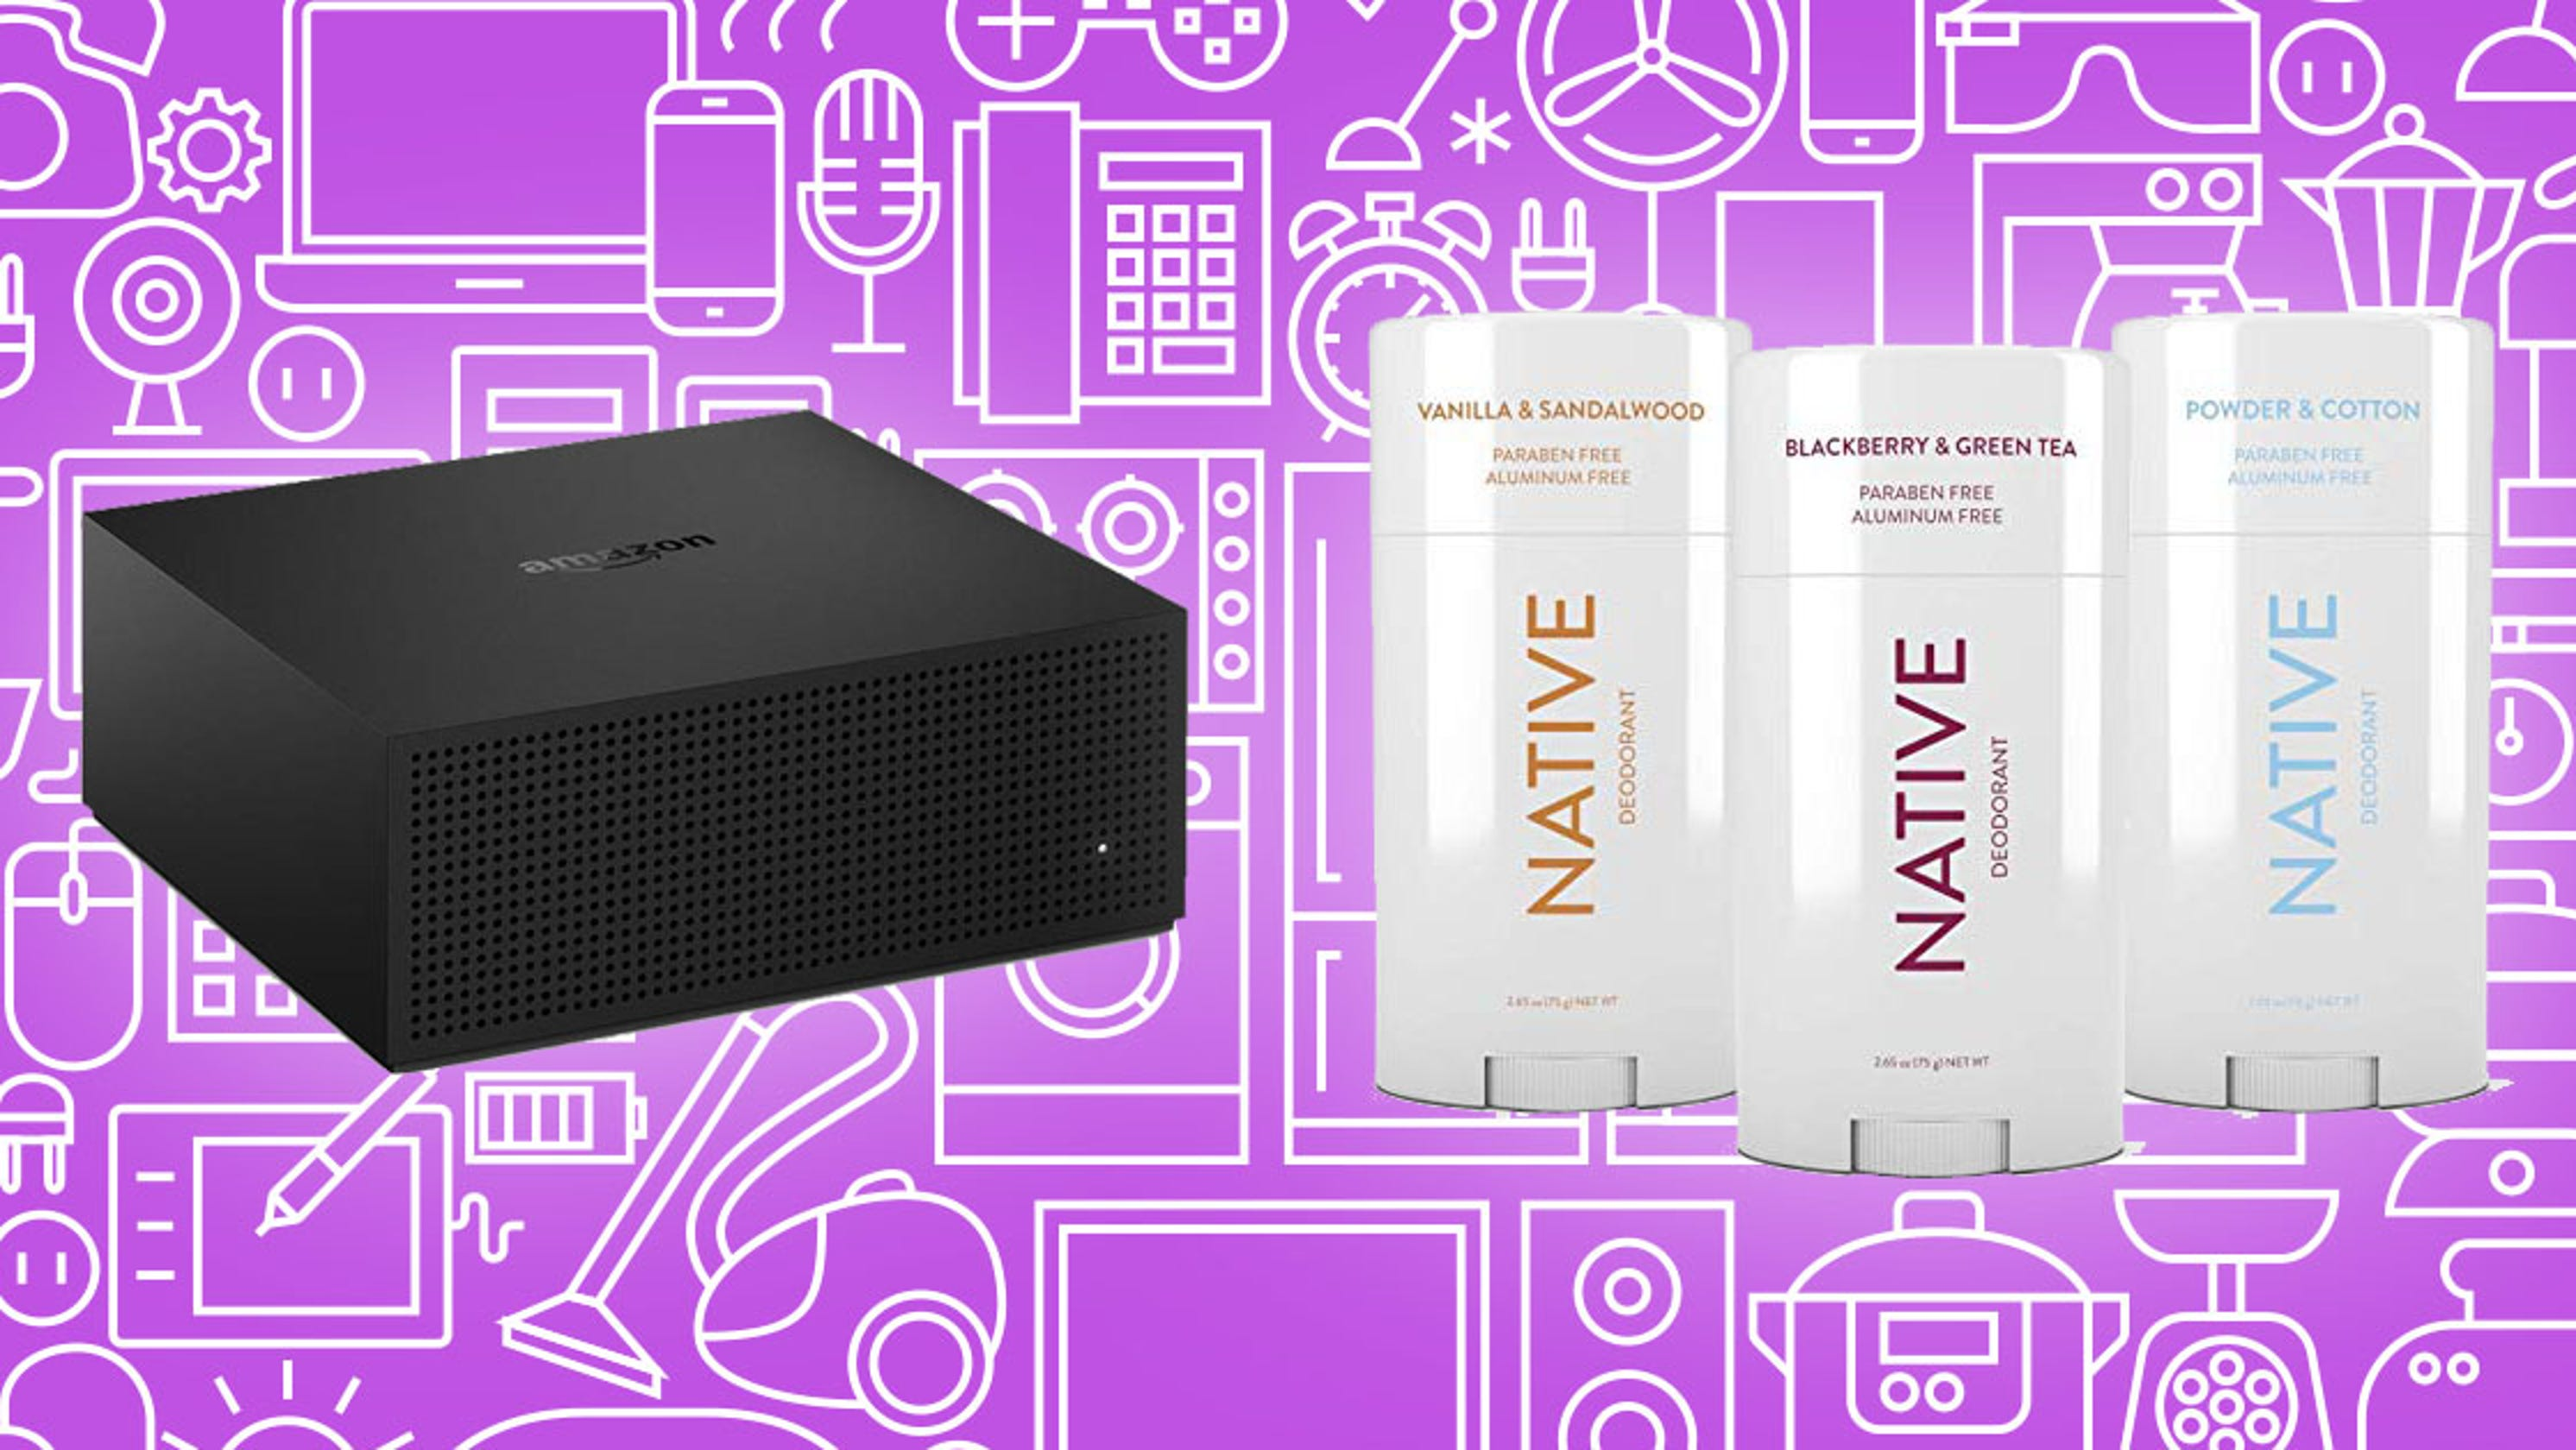 The 5 best Amazon deals you can get this weekend